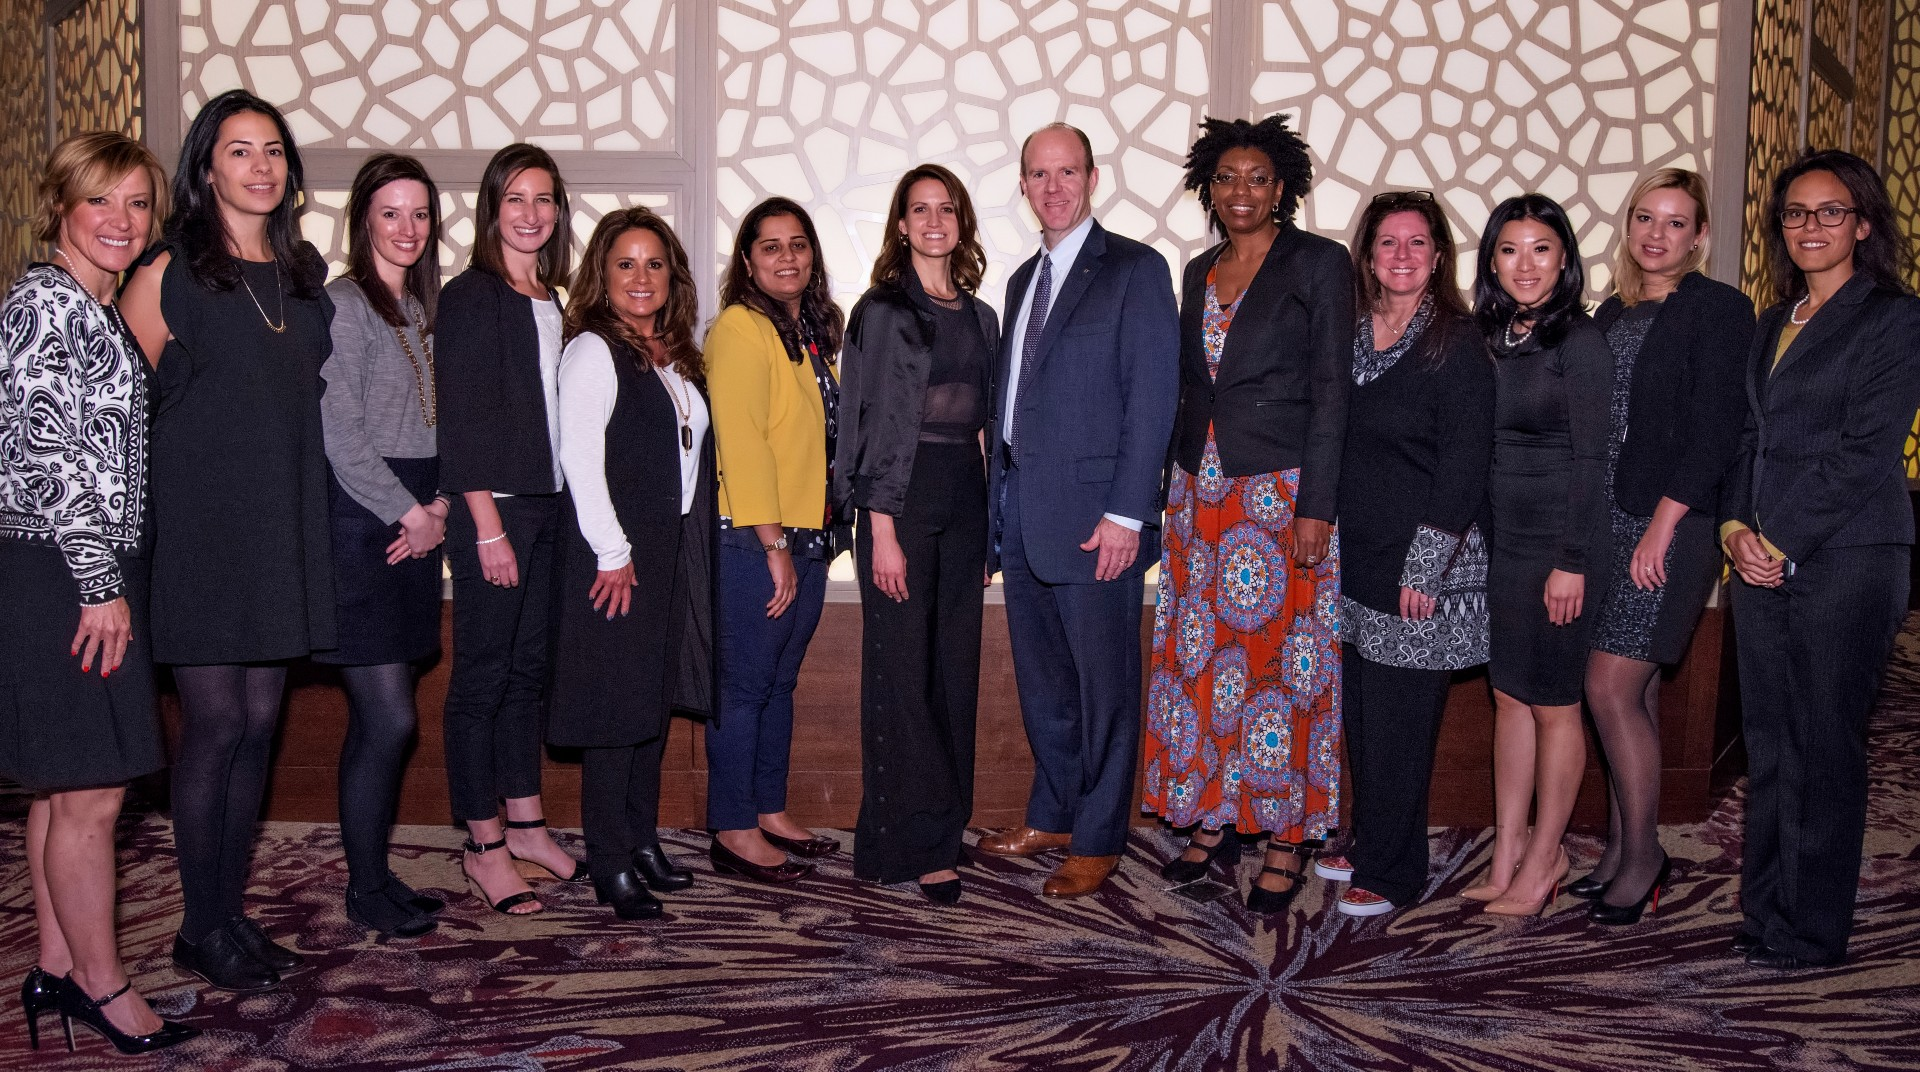 Some members of the 2016 class of EY's Entrepreneurial Winning Women program with U.S. Chairman Steve Howe.